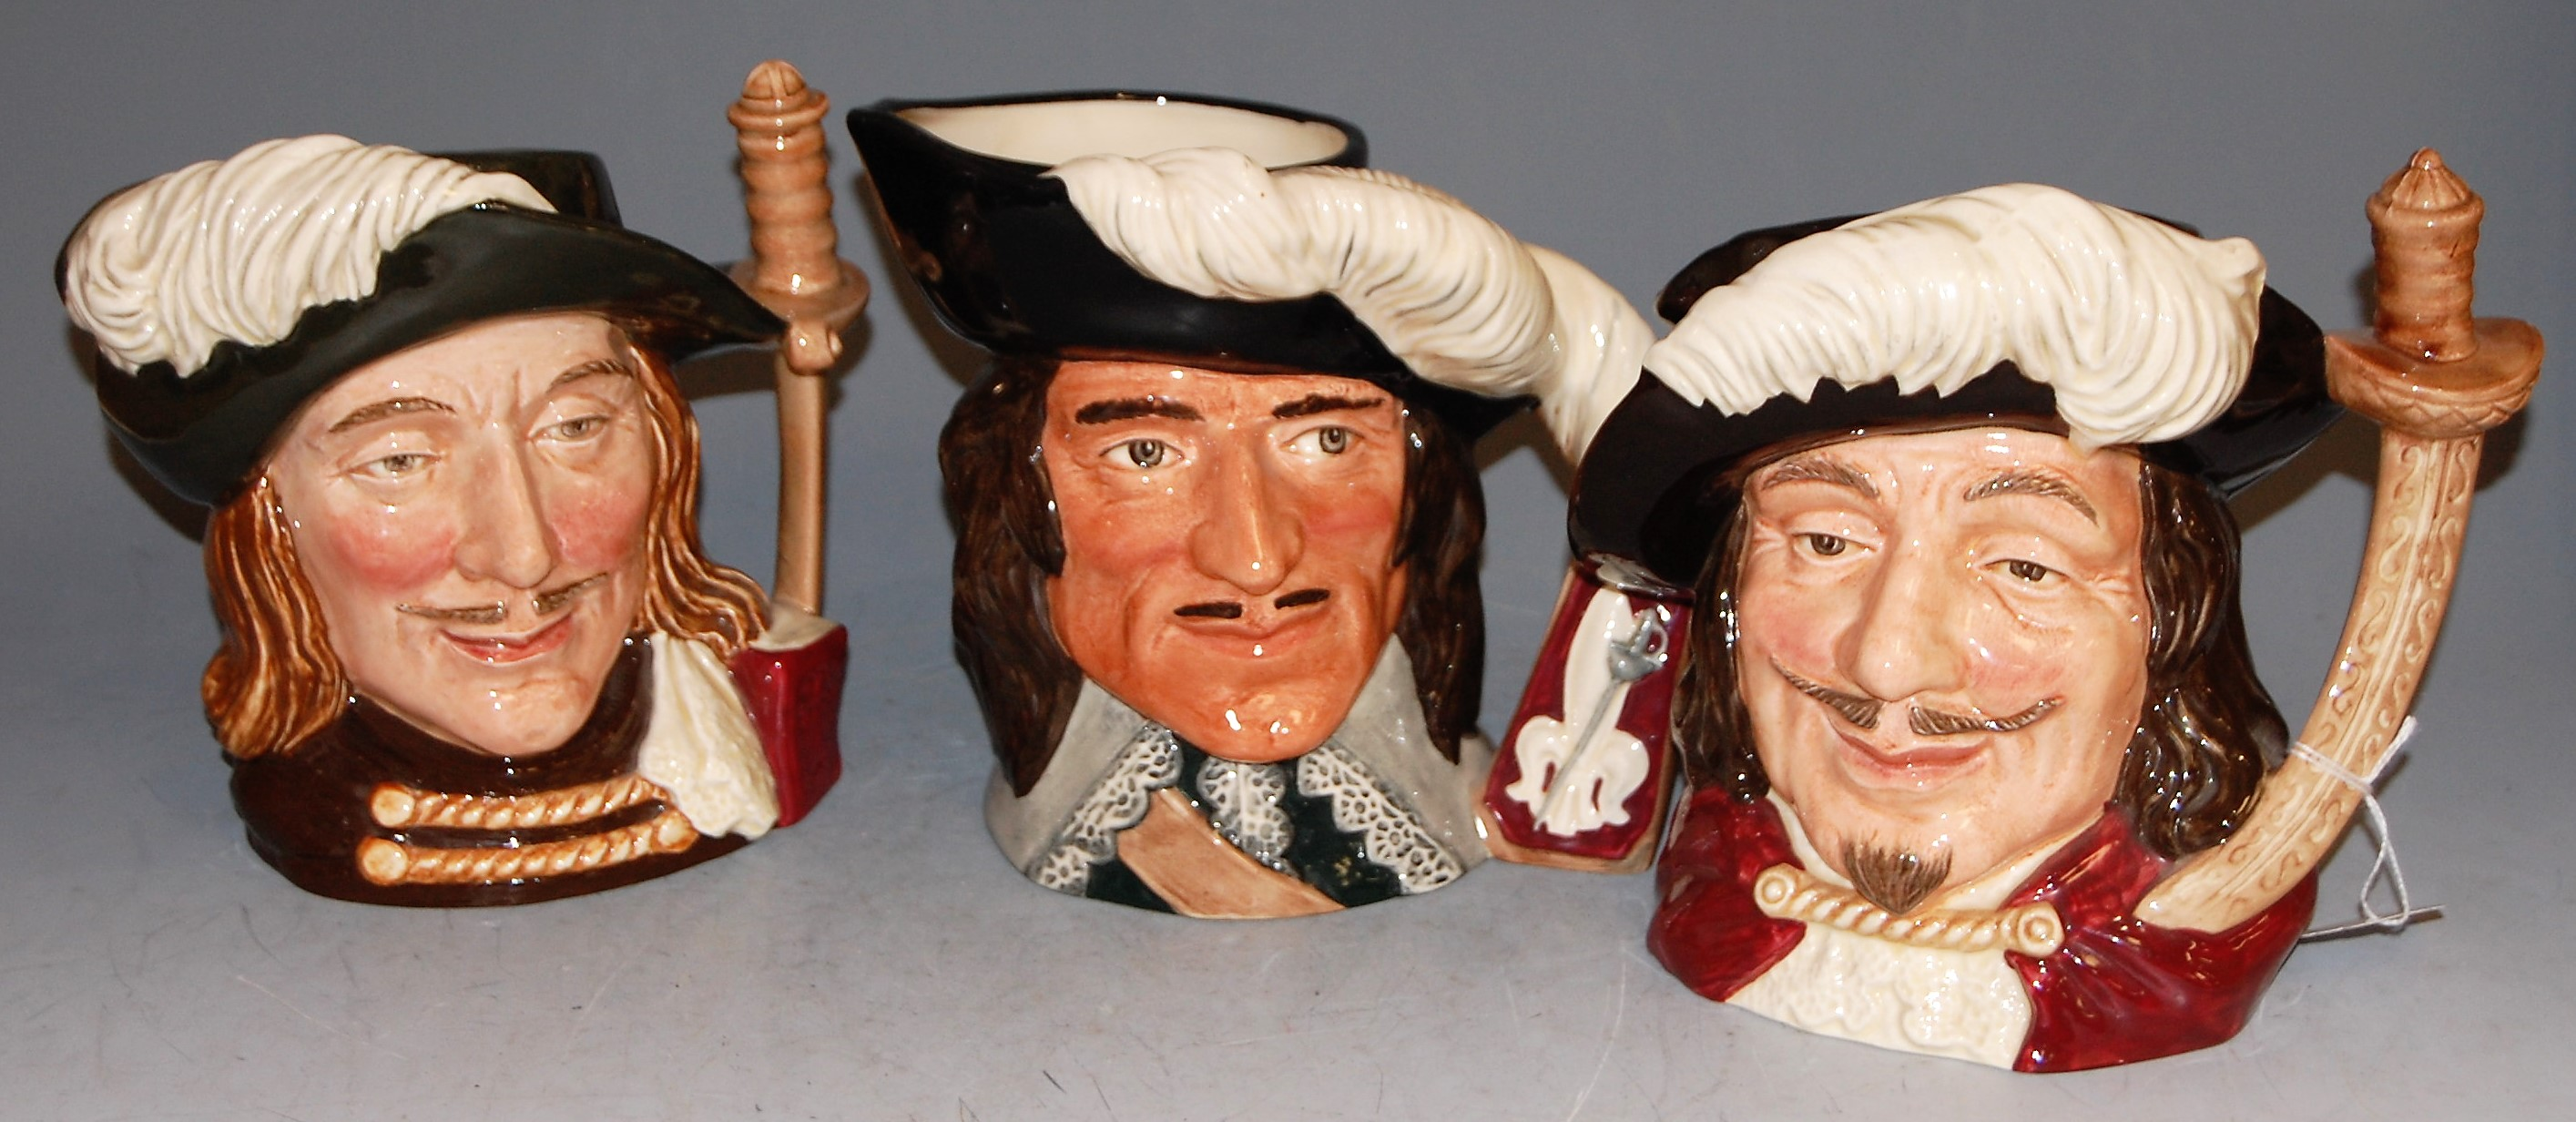 Lot 60 - Three Royal Doulton character jugs, being The Three Musketeers comprising Porthus D6440, D'